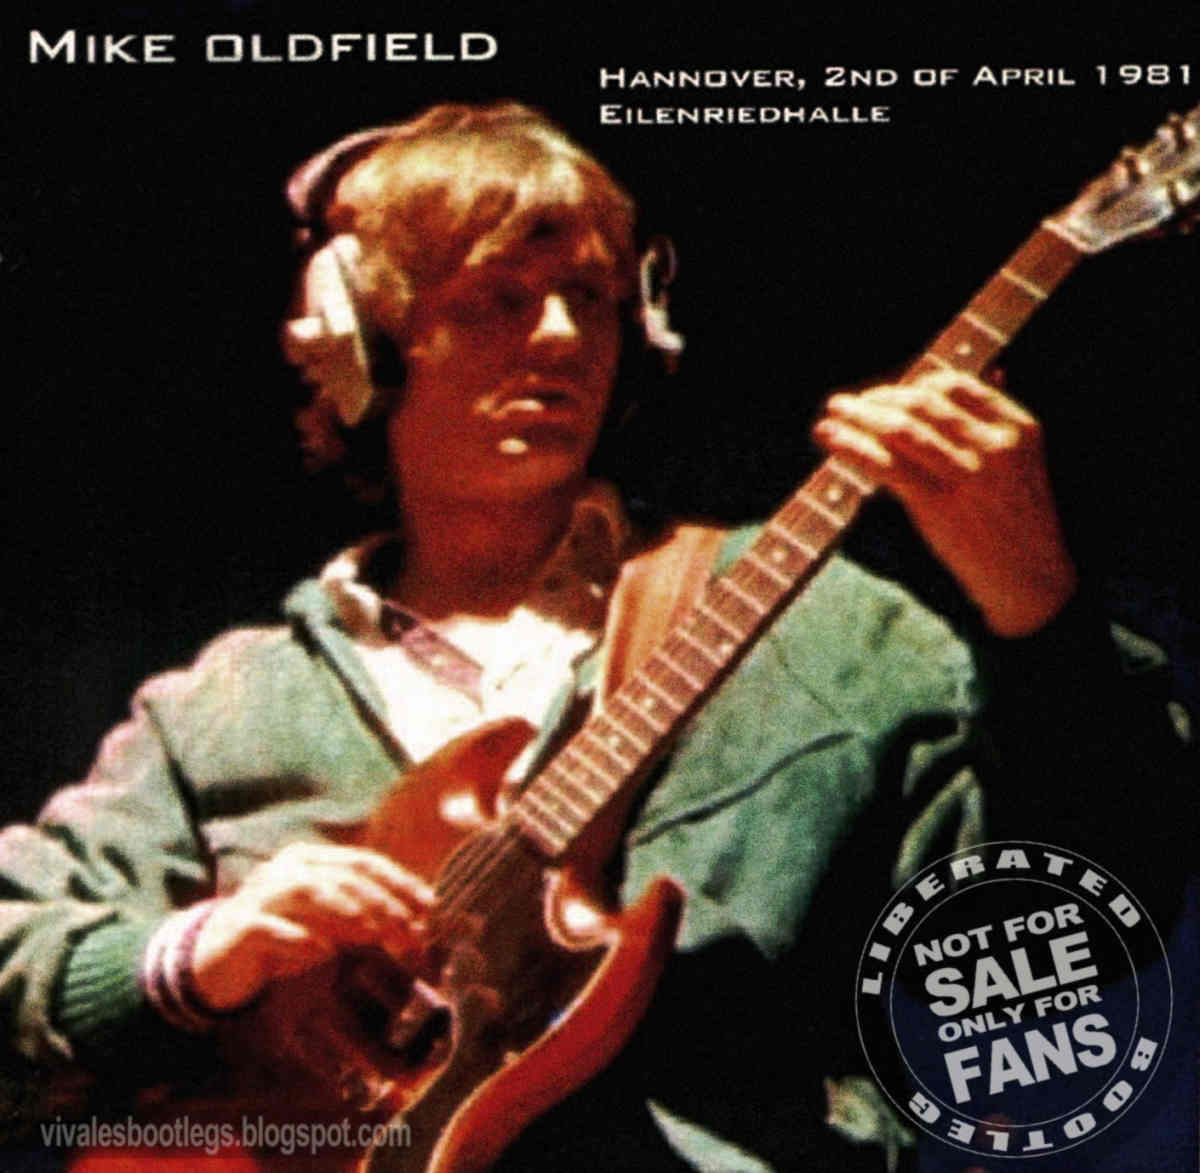 e67266f7985b Mike Oldfield  Adventure In Hannover Live  81. Eilenriedhalle ...